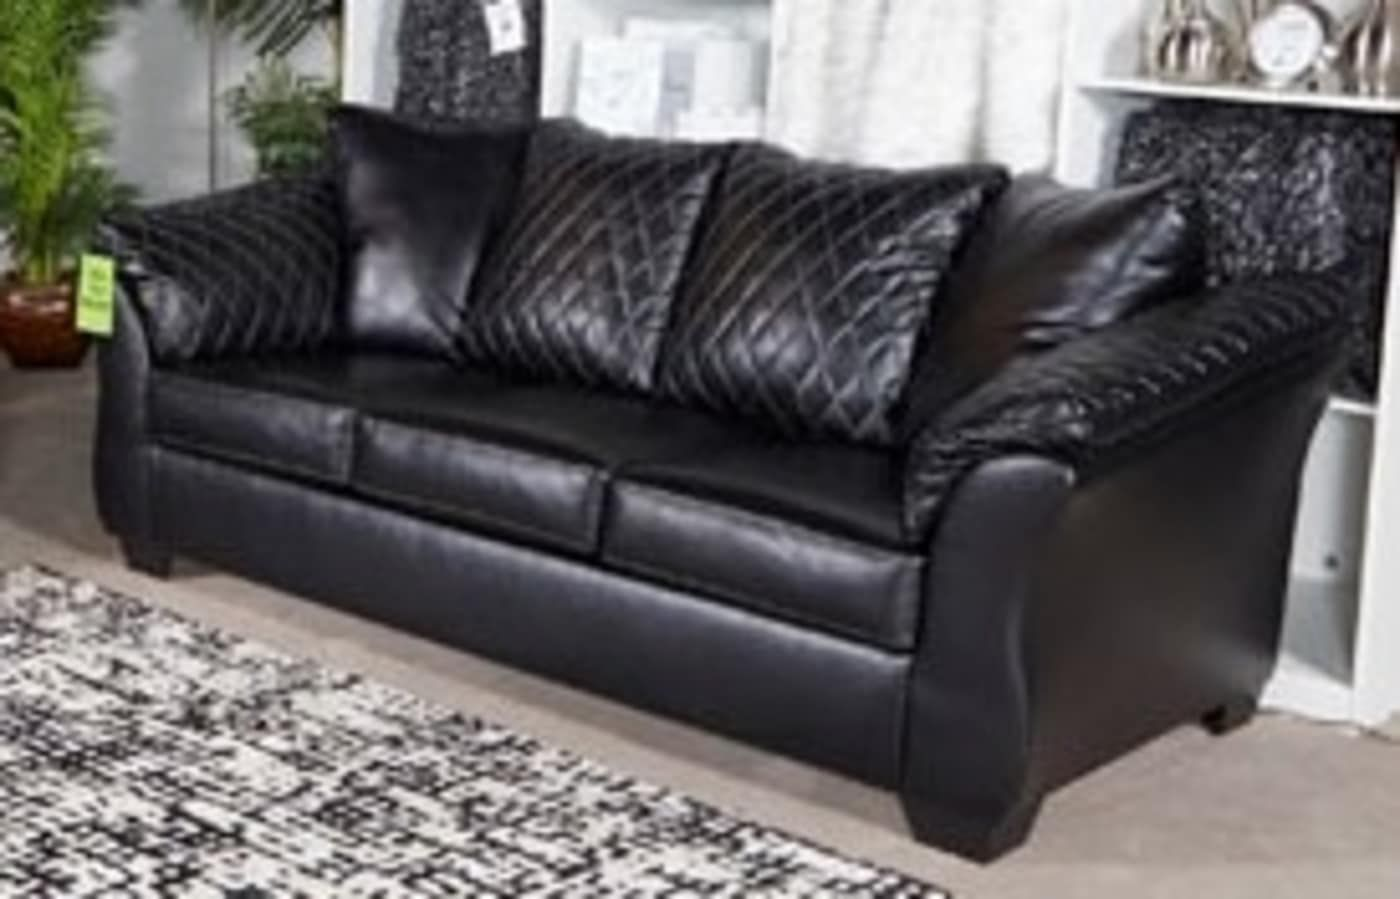 Best Signature Design By Ashley Betrillo Black Sofa Reviews Goedekers Com With Images Black 400 x 300